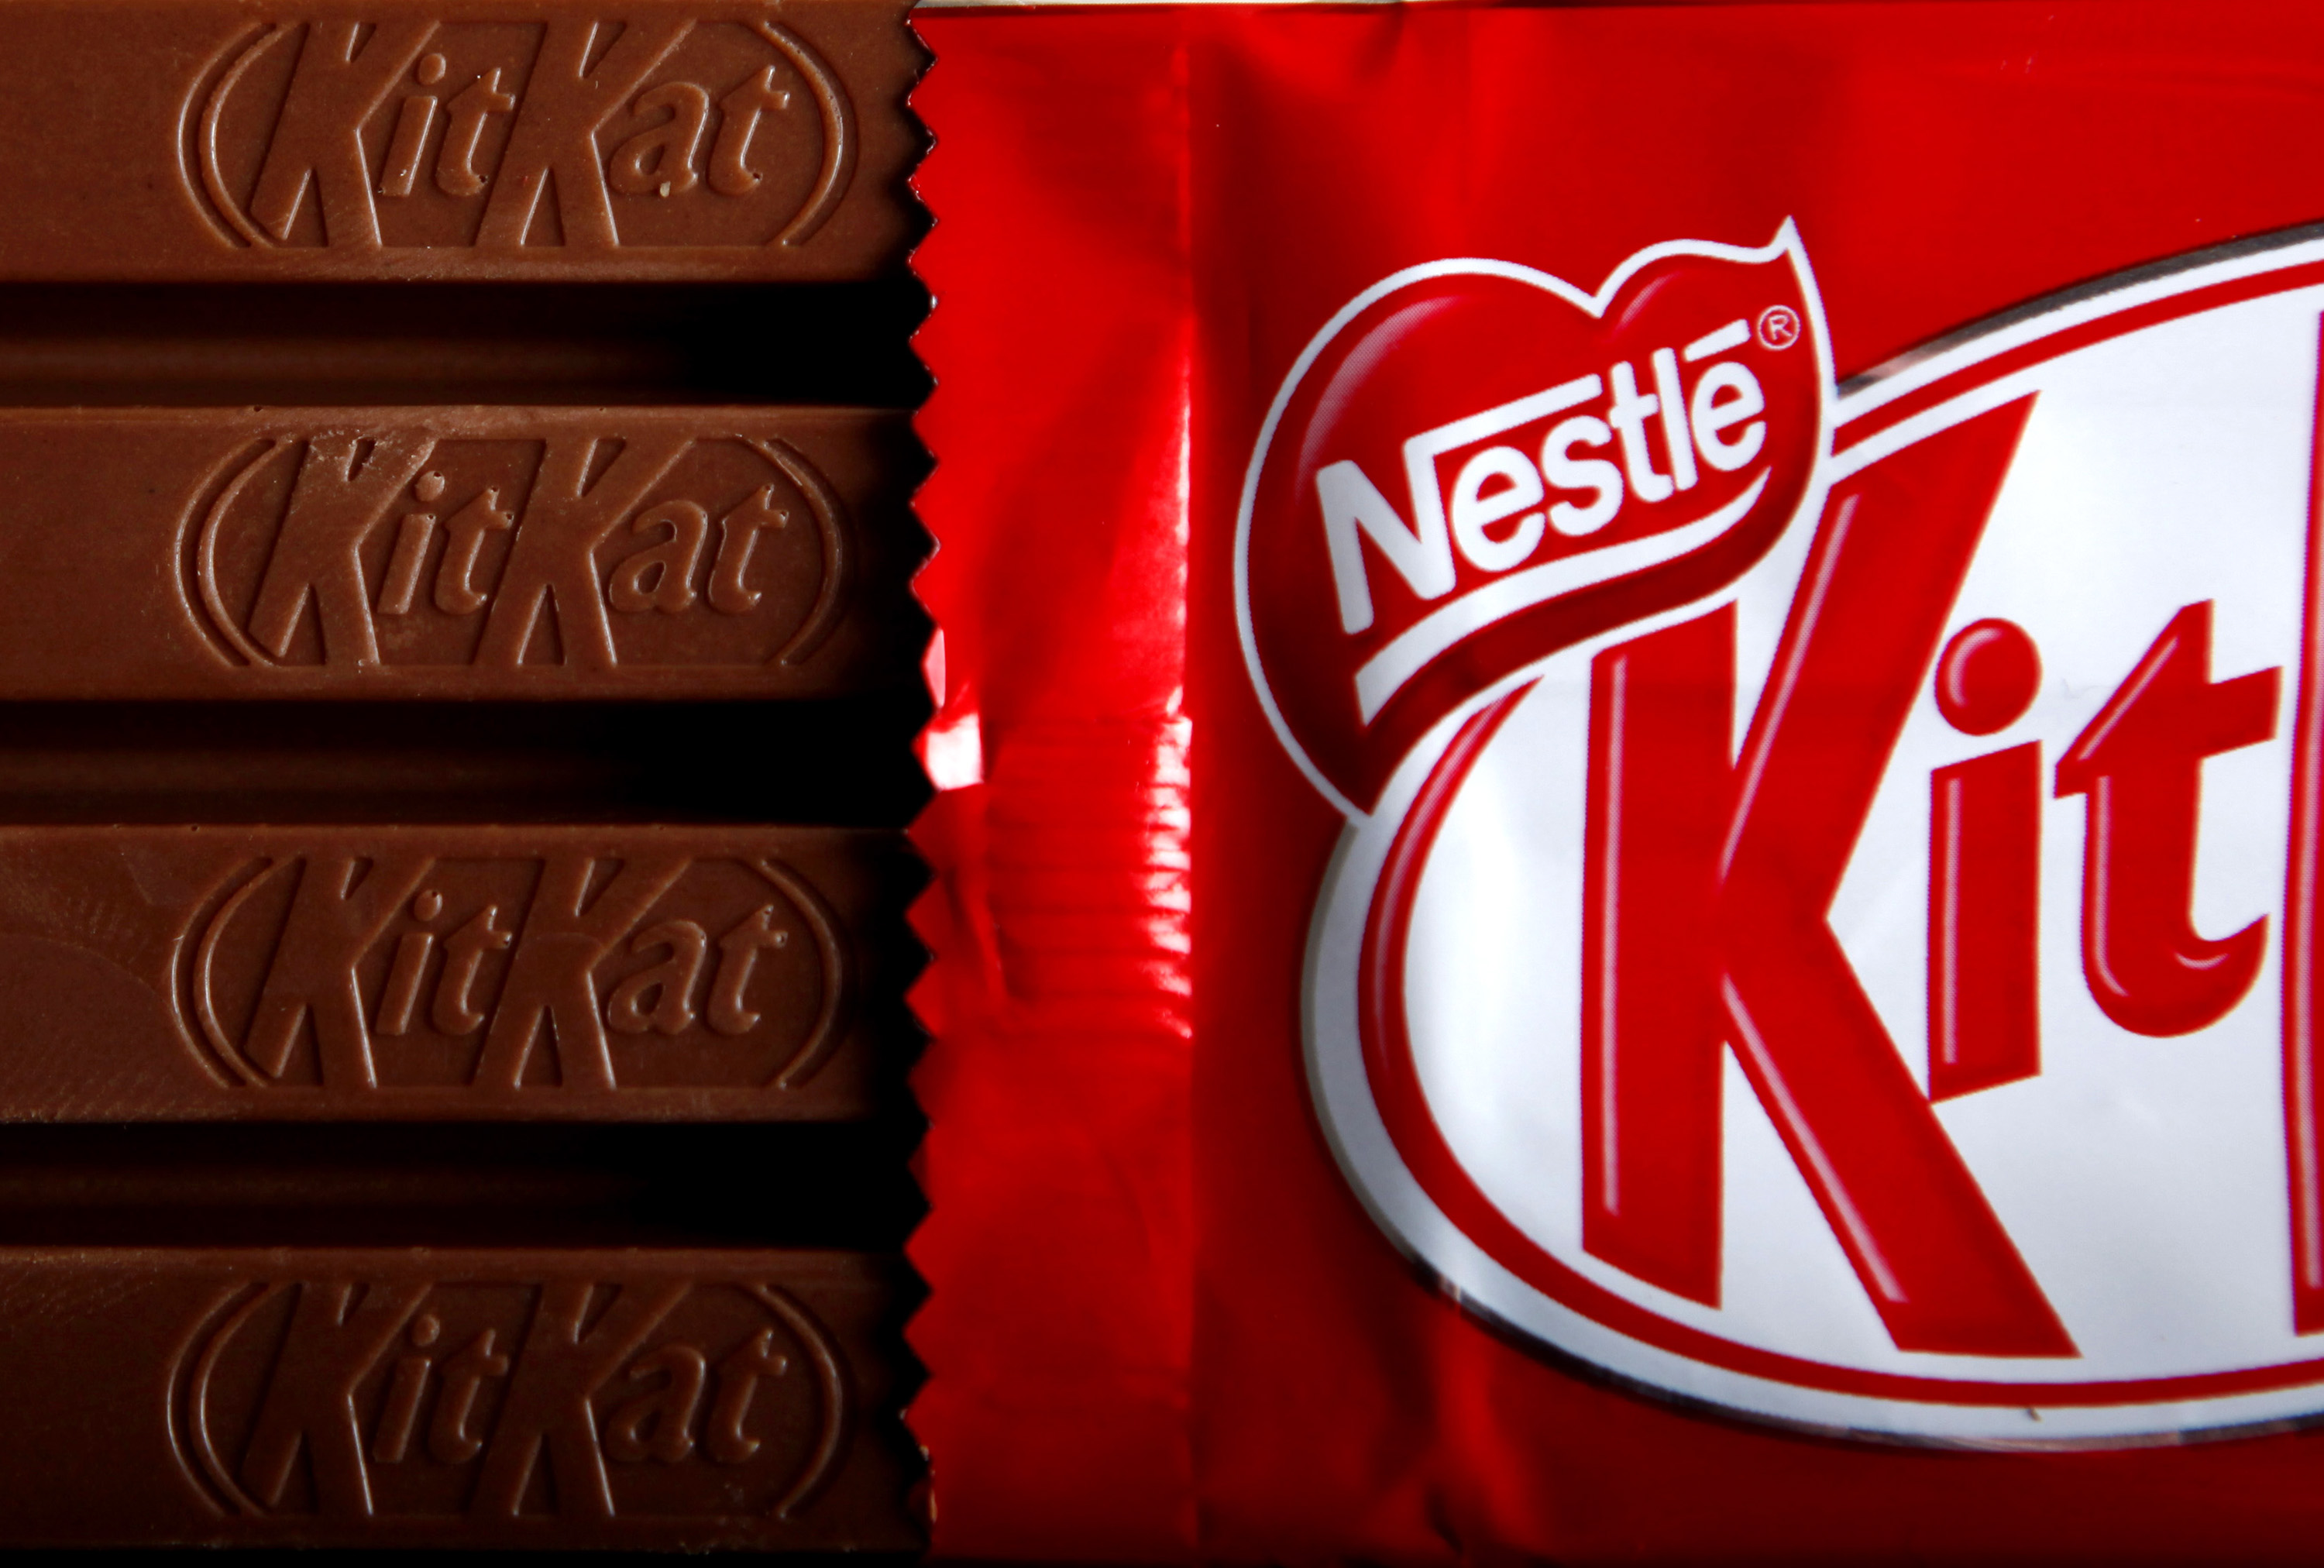 Bars of original KitKat chocolate, produced by Nestle SA, sit arranged for a photograph in London, U.K., on Monday, Dec.7, 2009.